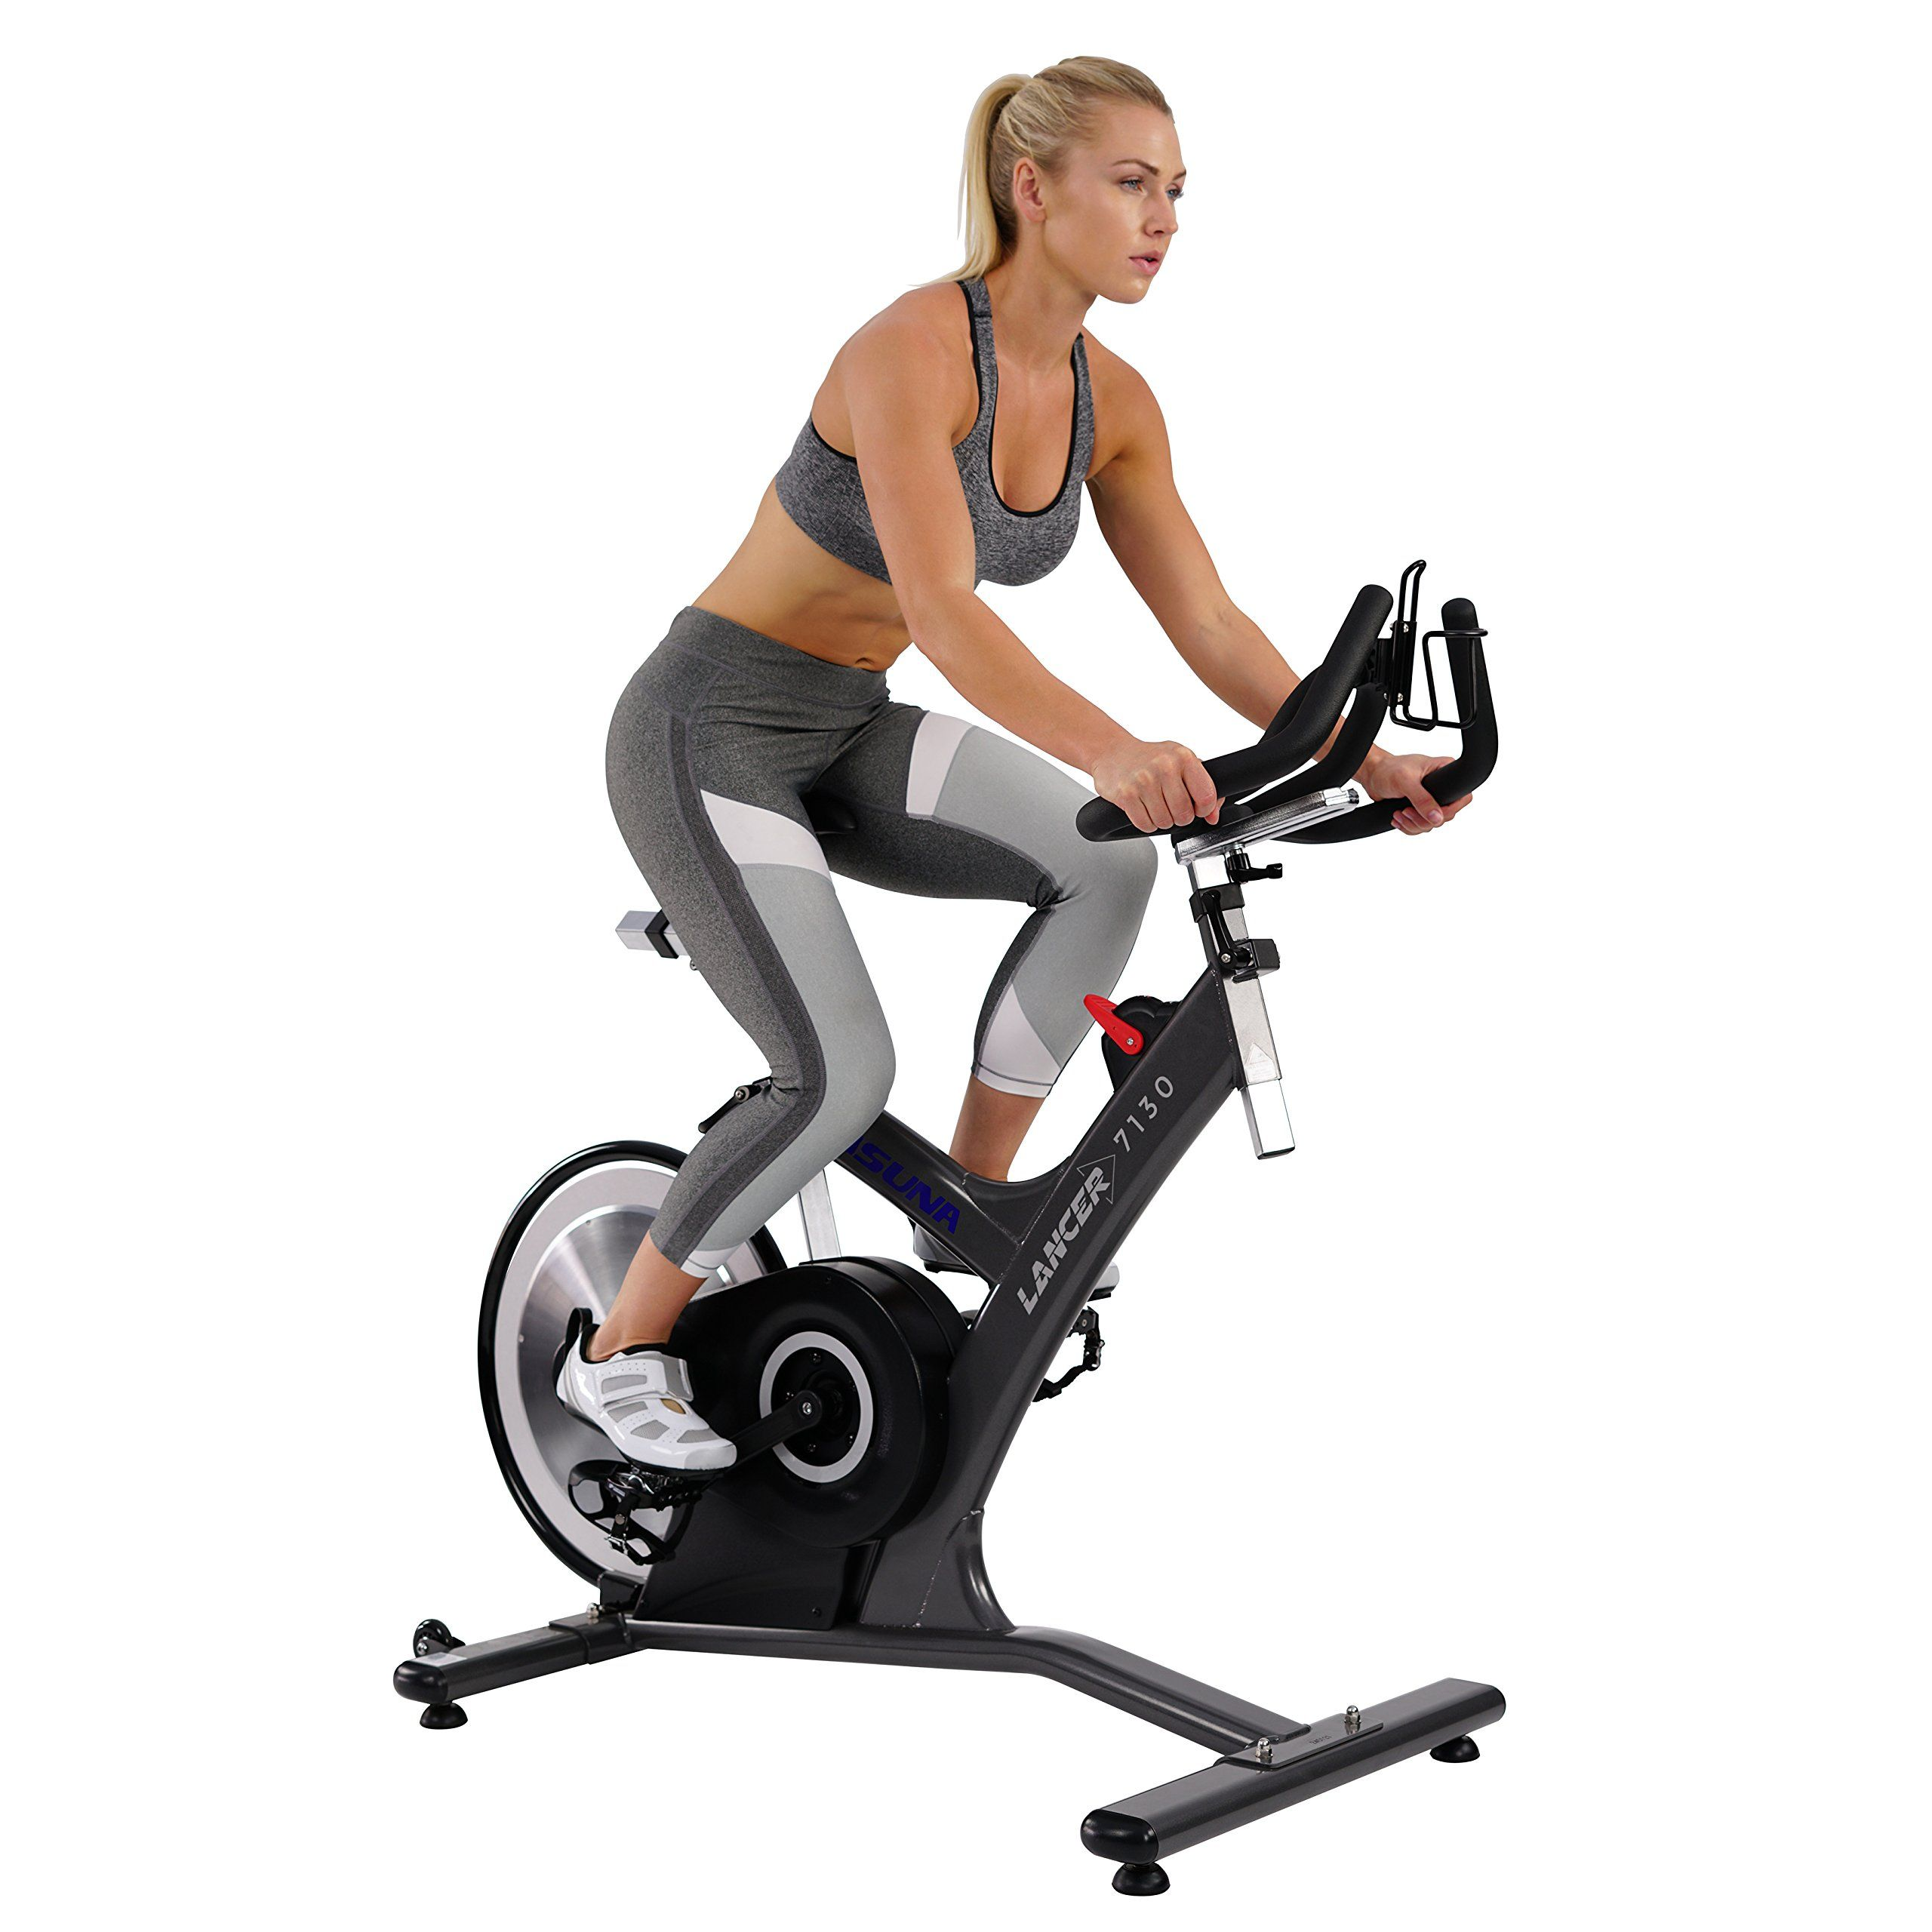 Asuna Lancer Cycle Exercise Bike Magnetic Belt Rear Drive Commercial Indoor Cycling Bike You Can Find M Indoor Bike Workouts Biking Workout Cycling Workout